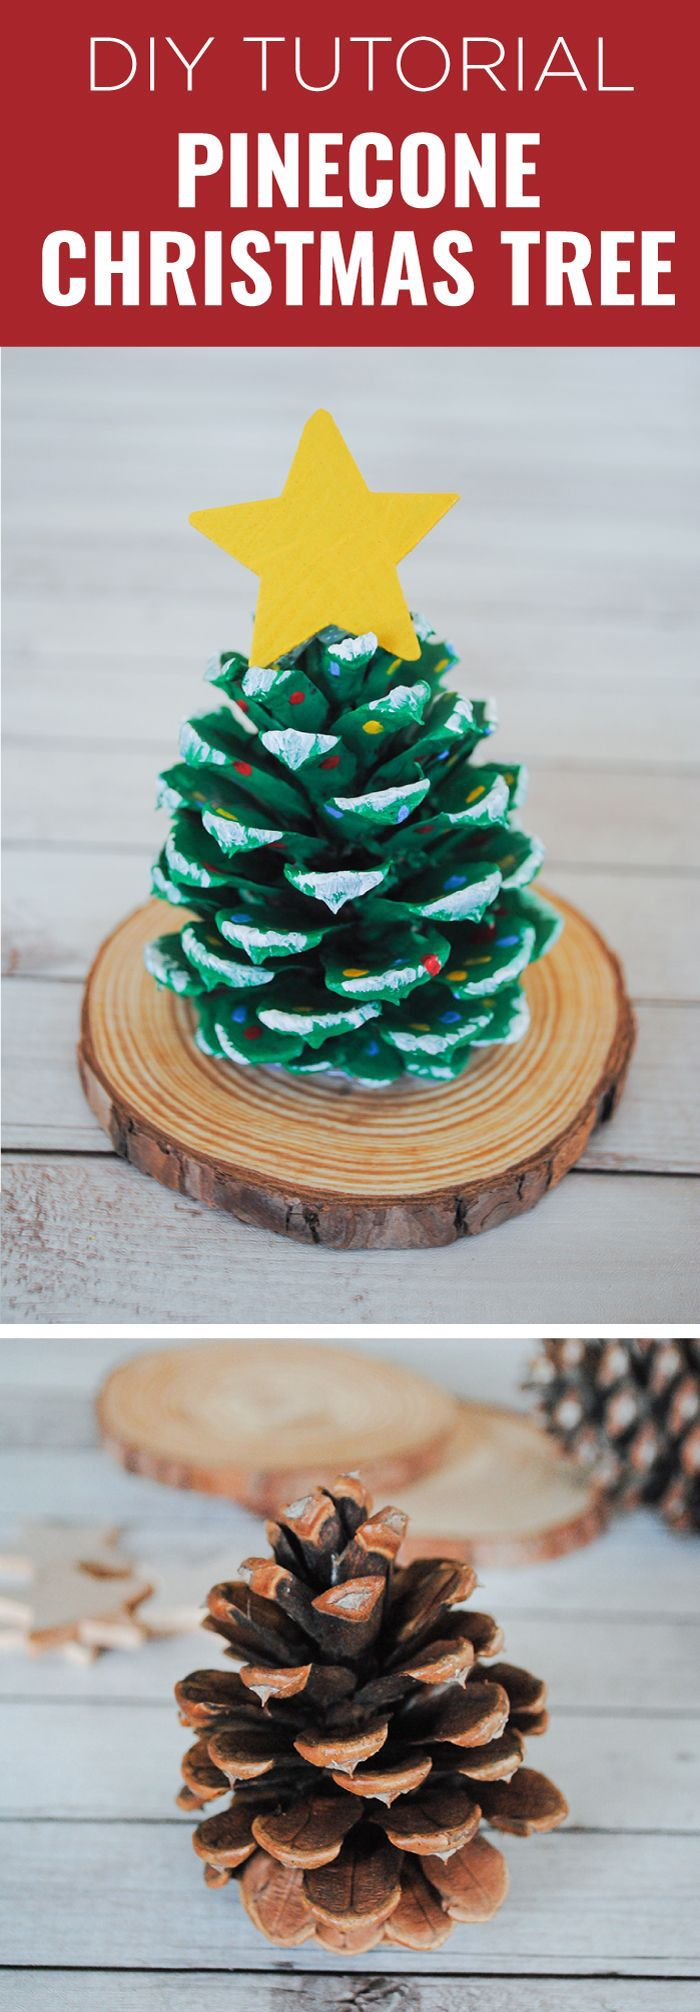 Easy Christmas Crafts For Kids To Keep Them Entertained This Festive Season Architecture Design Competitions Aggregator